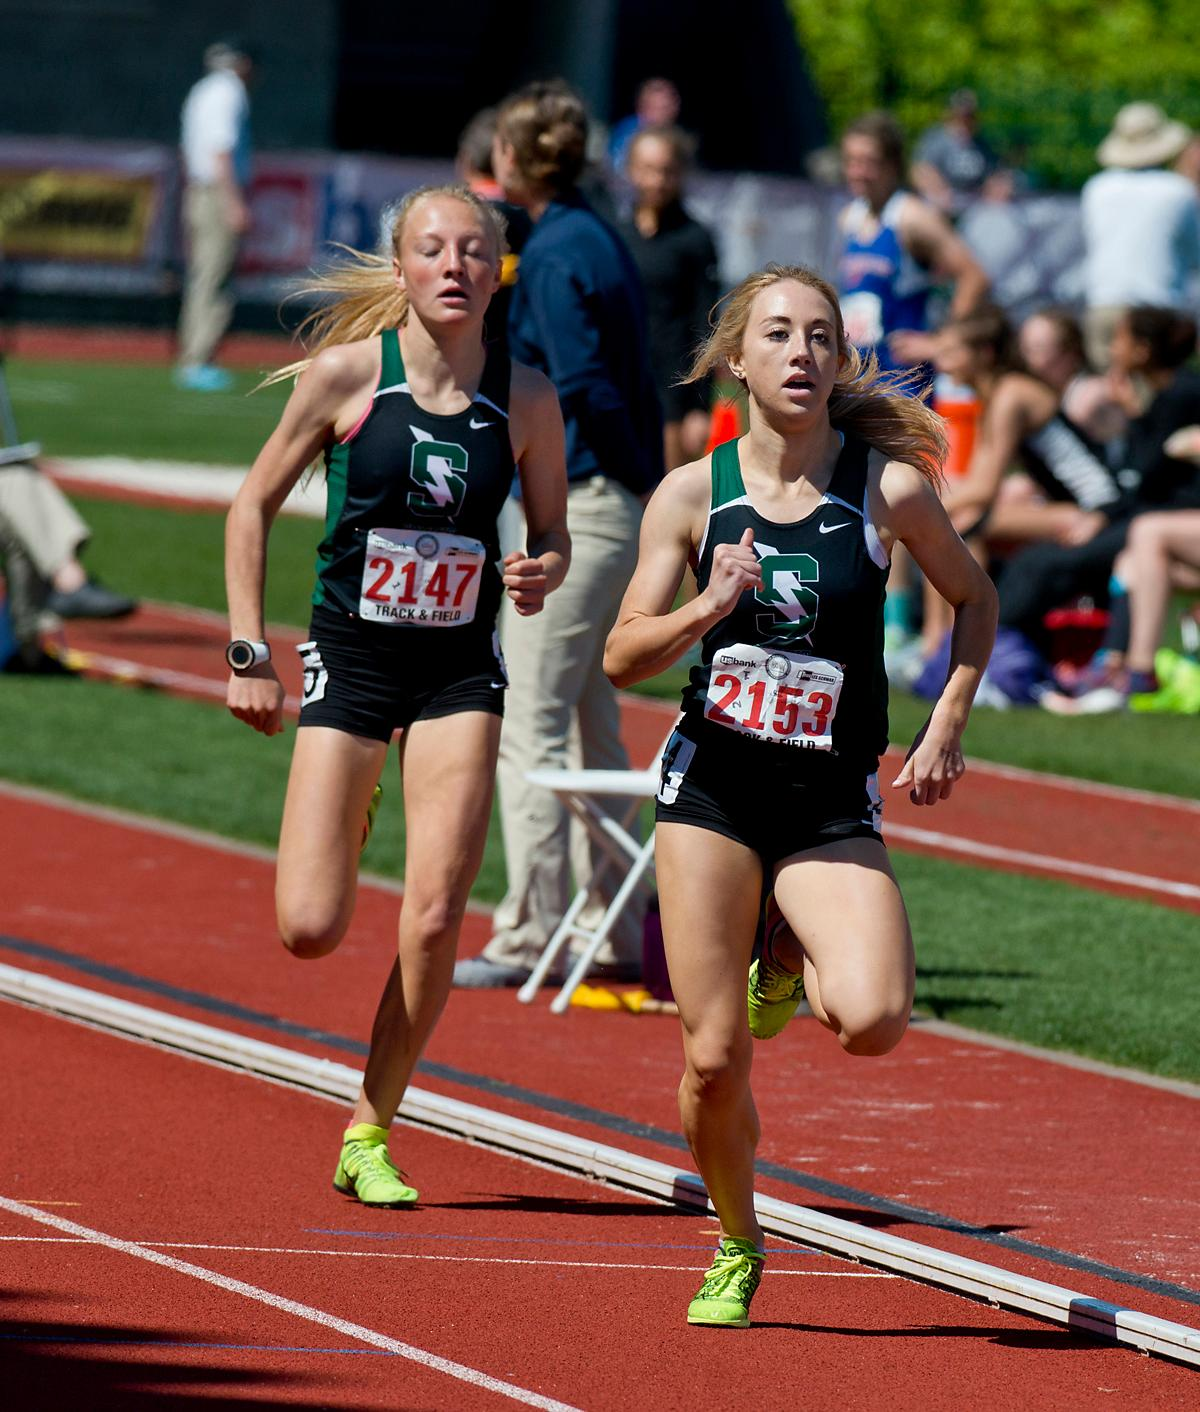 Emma Stevenson from Summit wins the 5A Girls 800 meter Run with a time of 2:17.75 at the OSAA Championship at Hayward Field on Saturday. Photo by Dan Morrison, Oregon News Lab